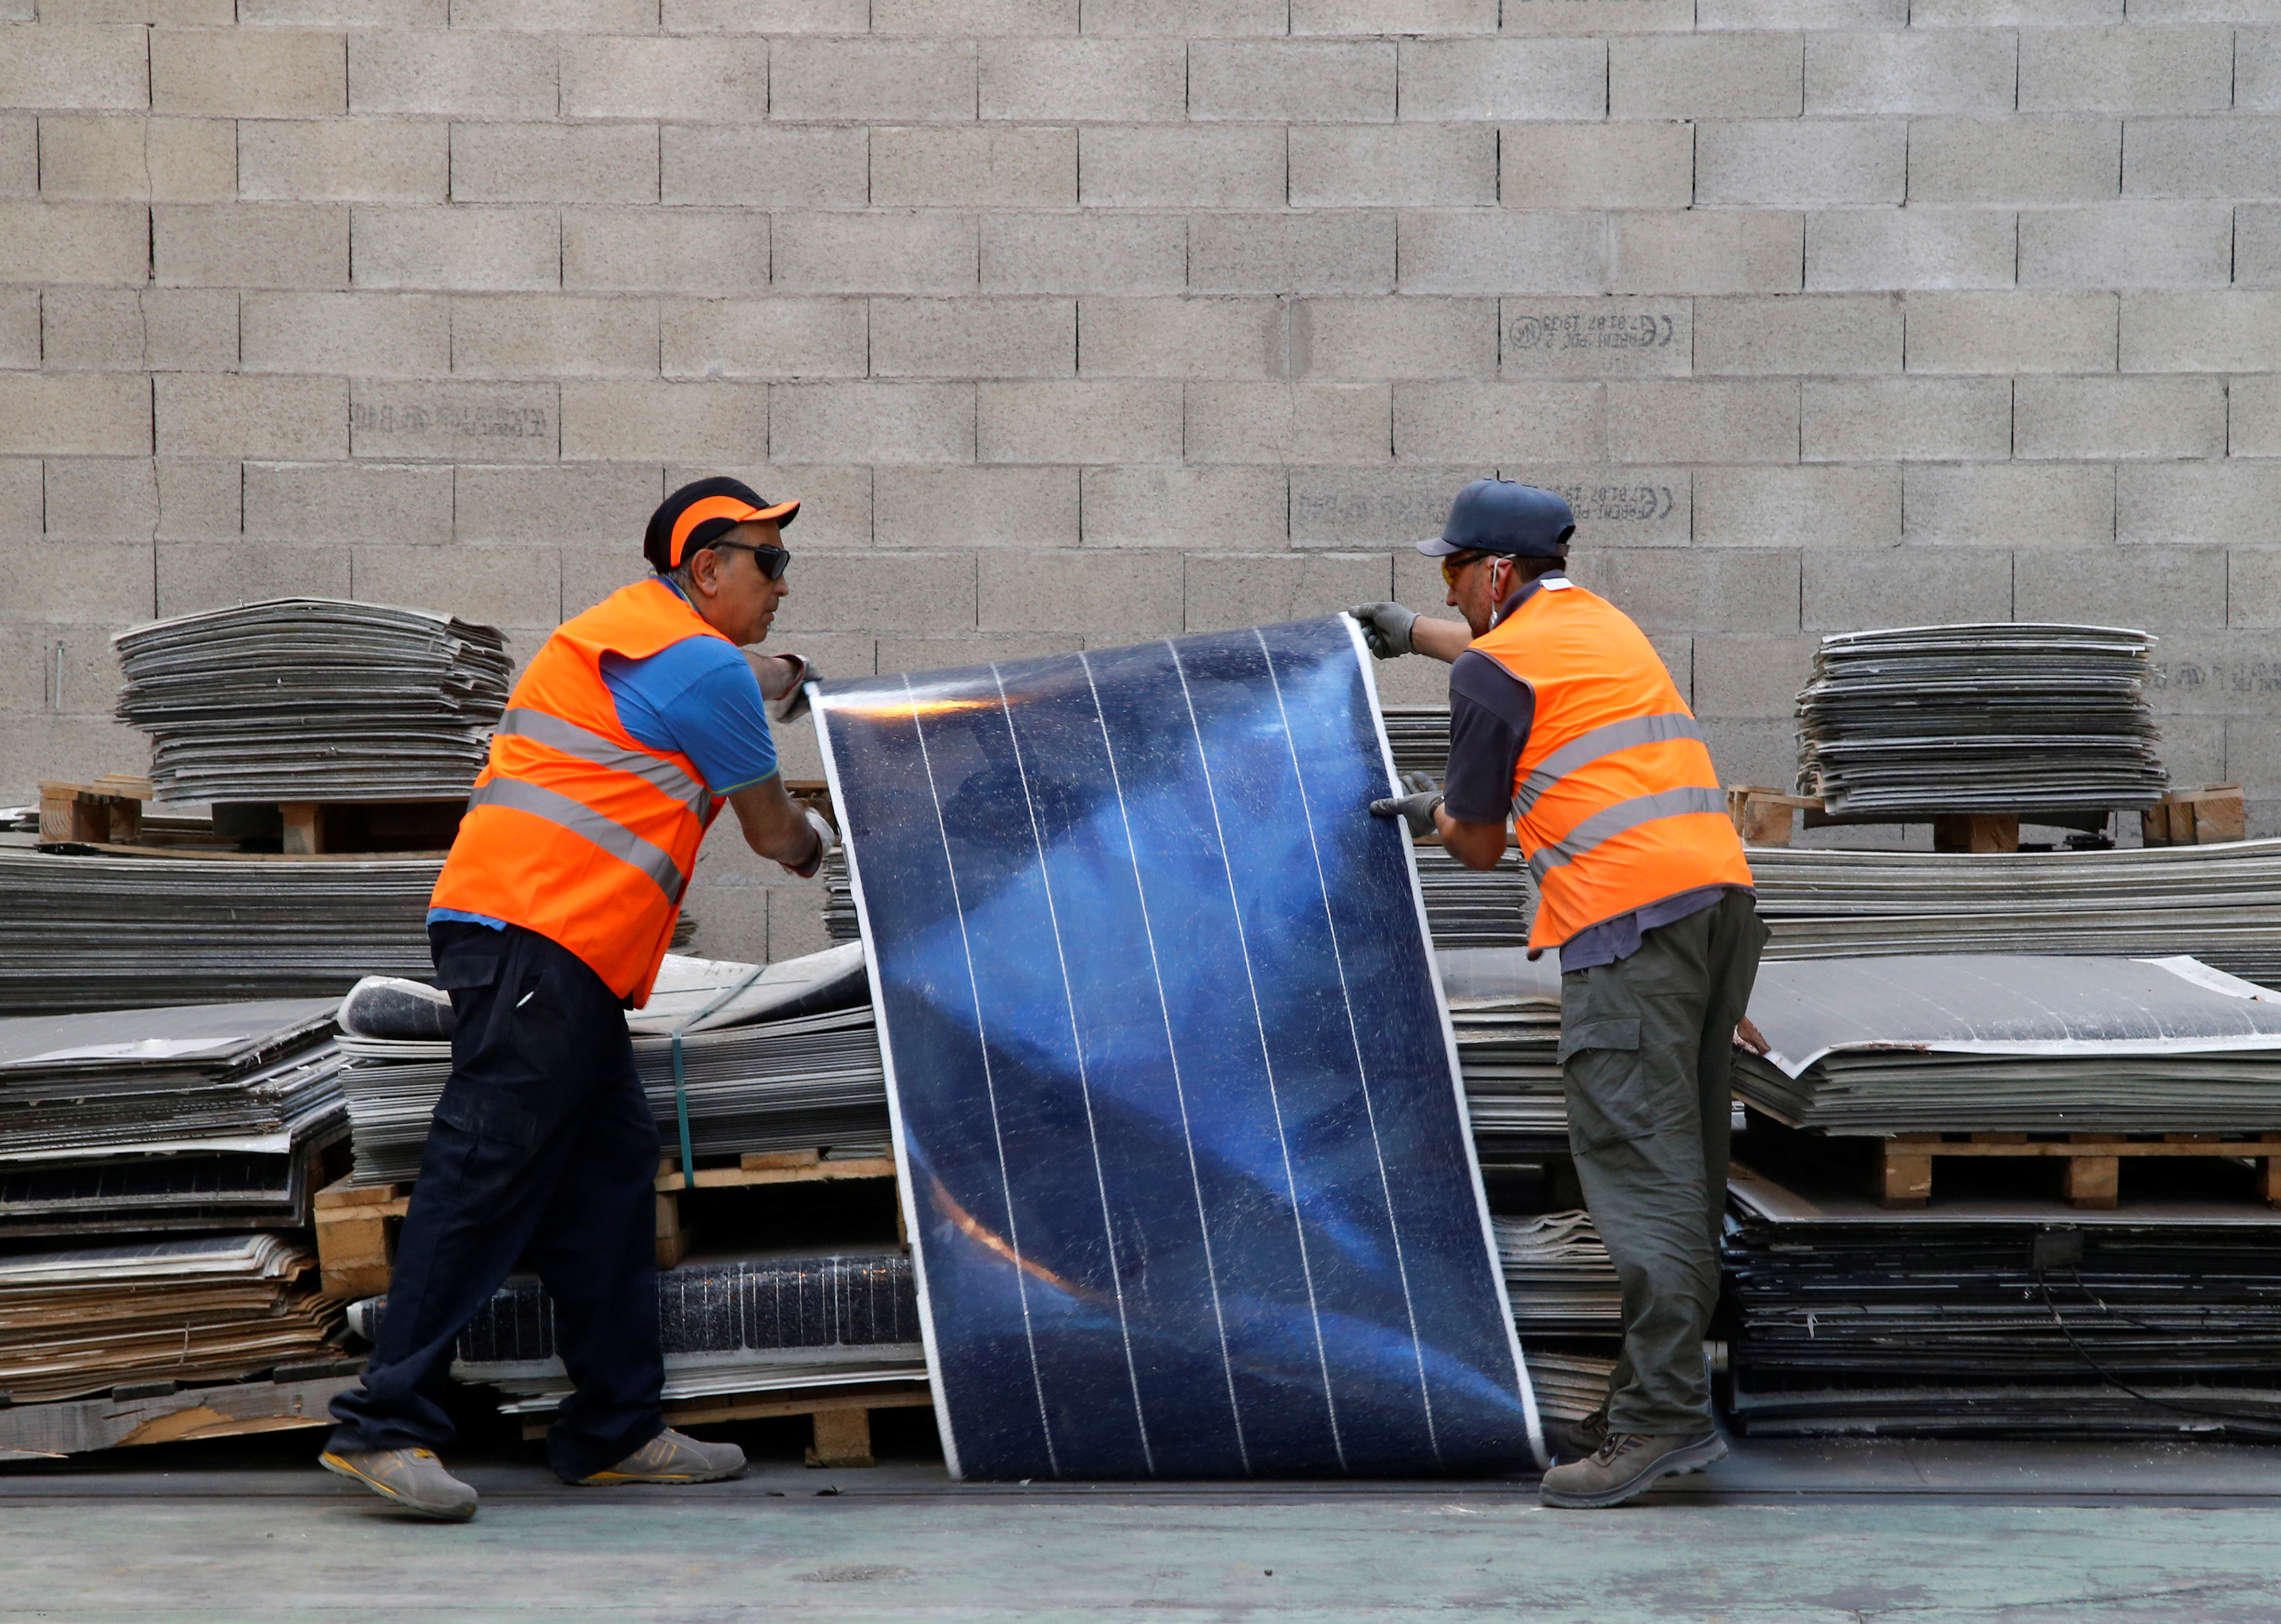 Employees work at Veolia's solar panel recycling plant in Rousset, France, June 25, 2018.  At the plant, photovoltaic panels are dissembled and their constituent parts such as glass, aluminium, silicon and plastics are recycled.  REUTERS/Jean-Paul Pelissier - RC137C601D50